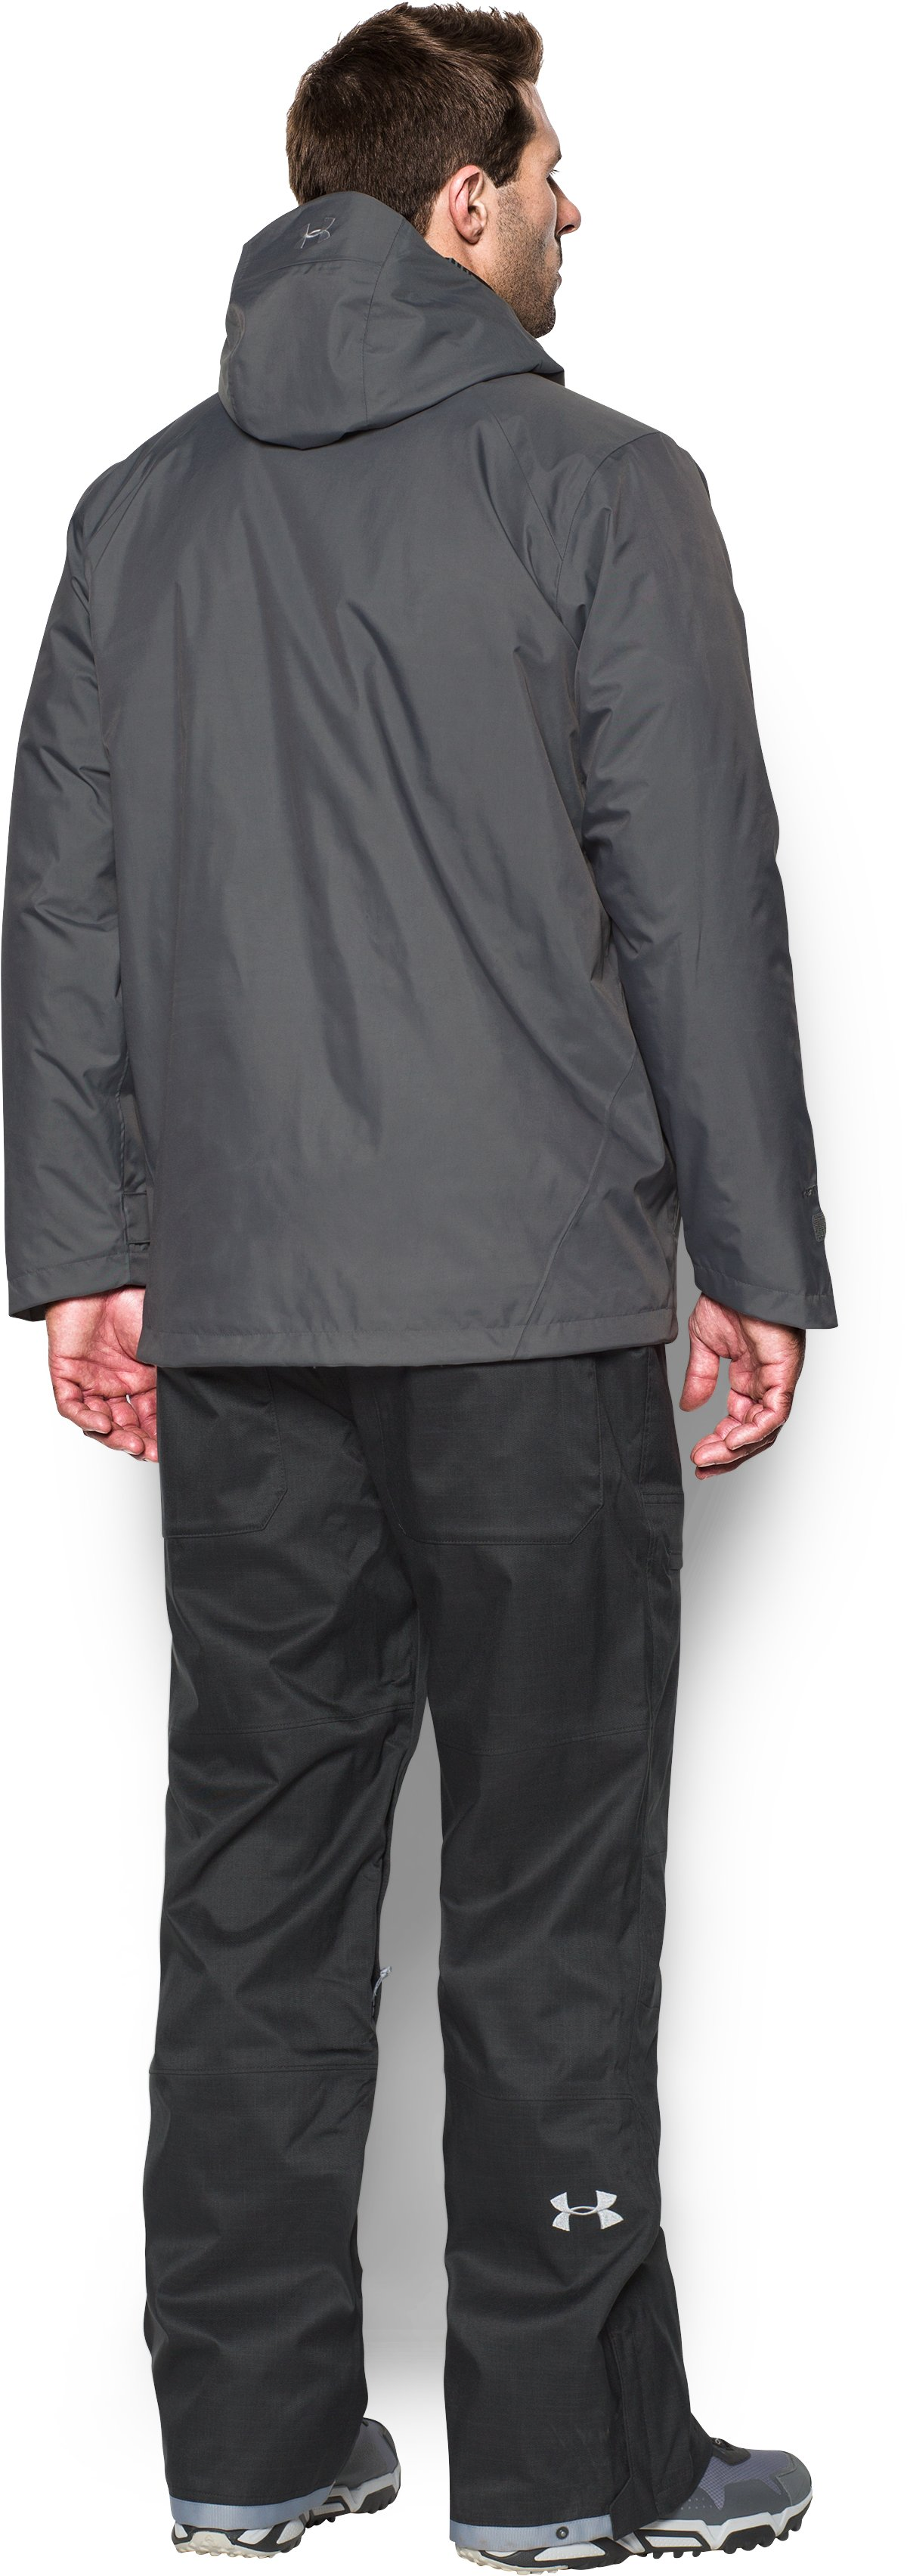 Men's ColdGear® Reactor Wayside 3-in-1 Jacket, Graphite, Back